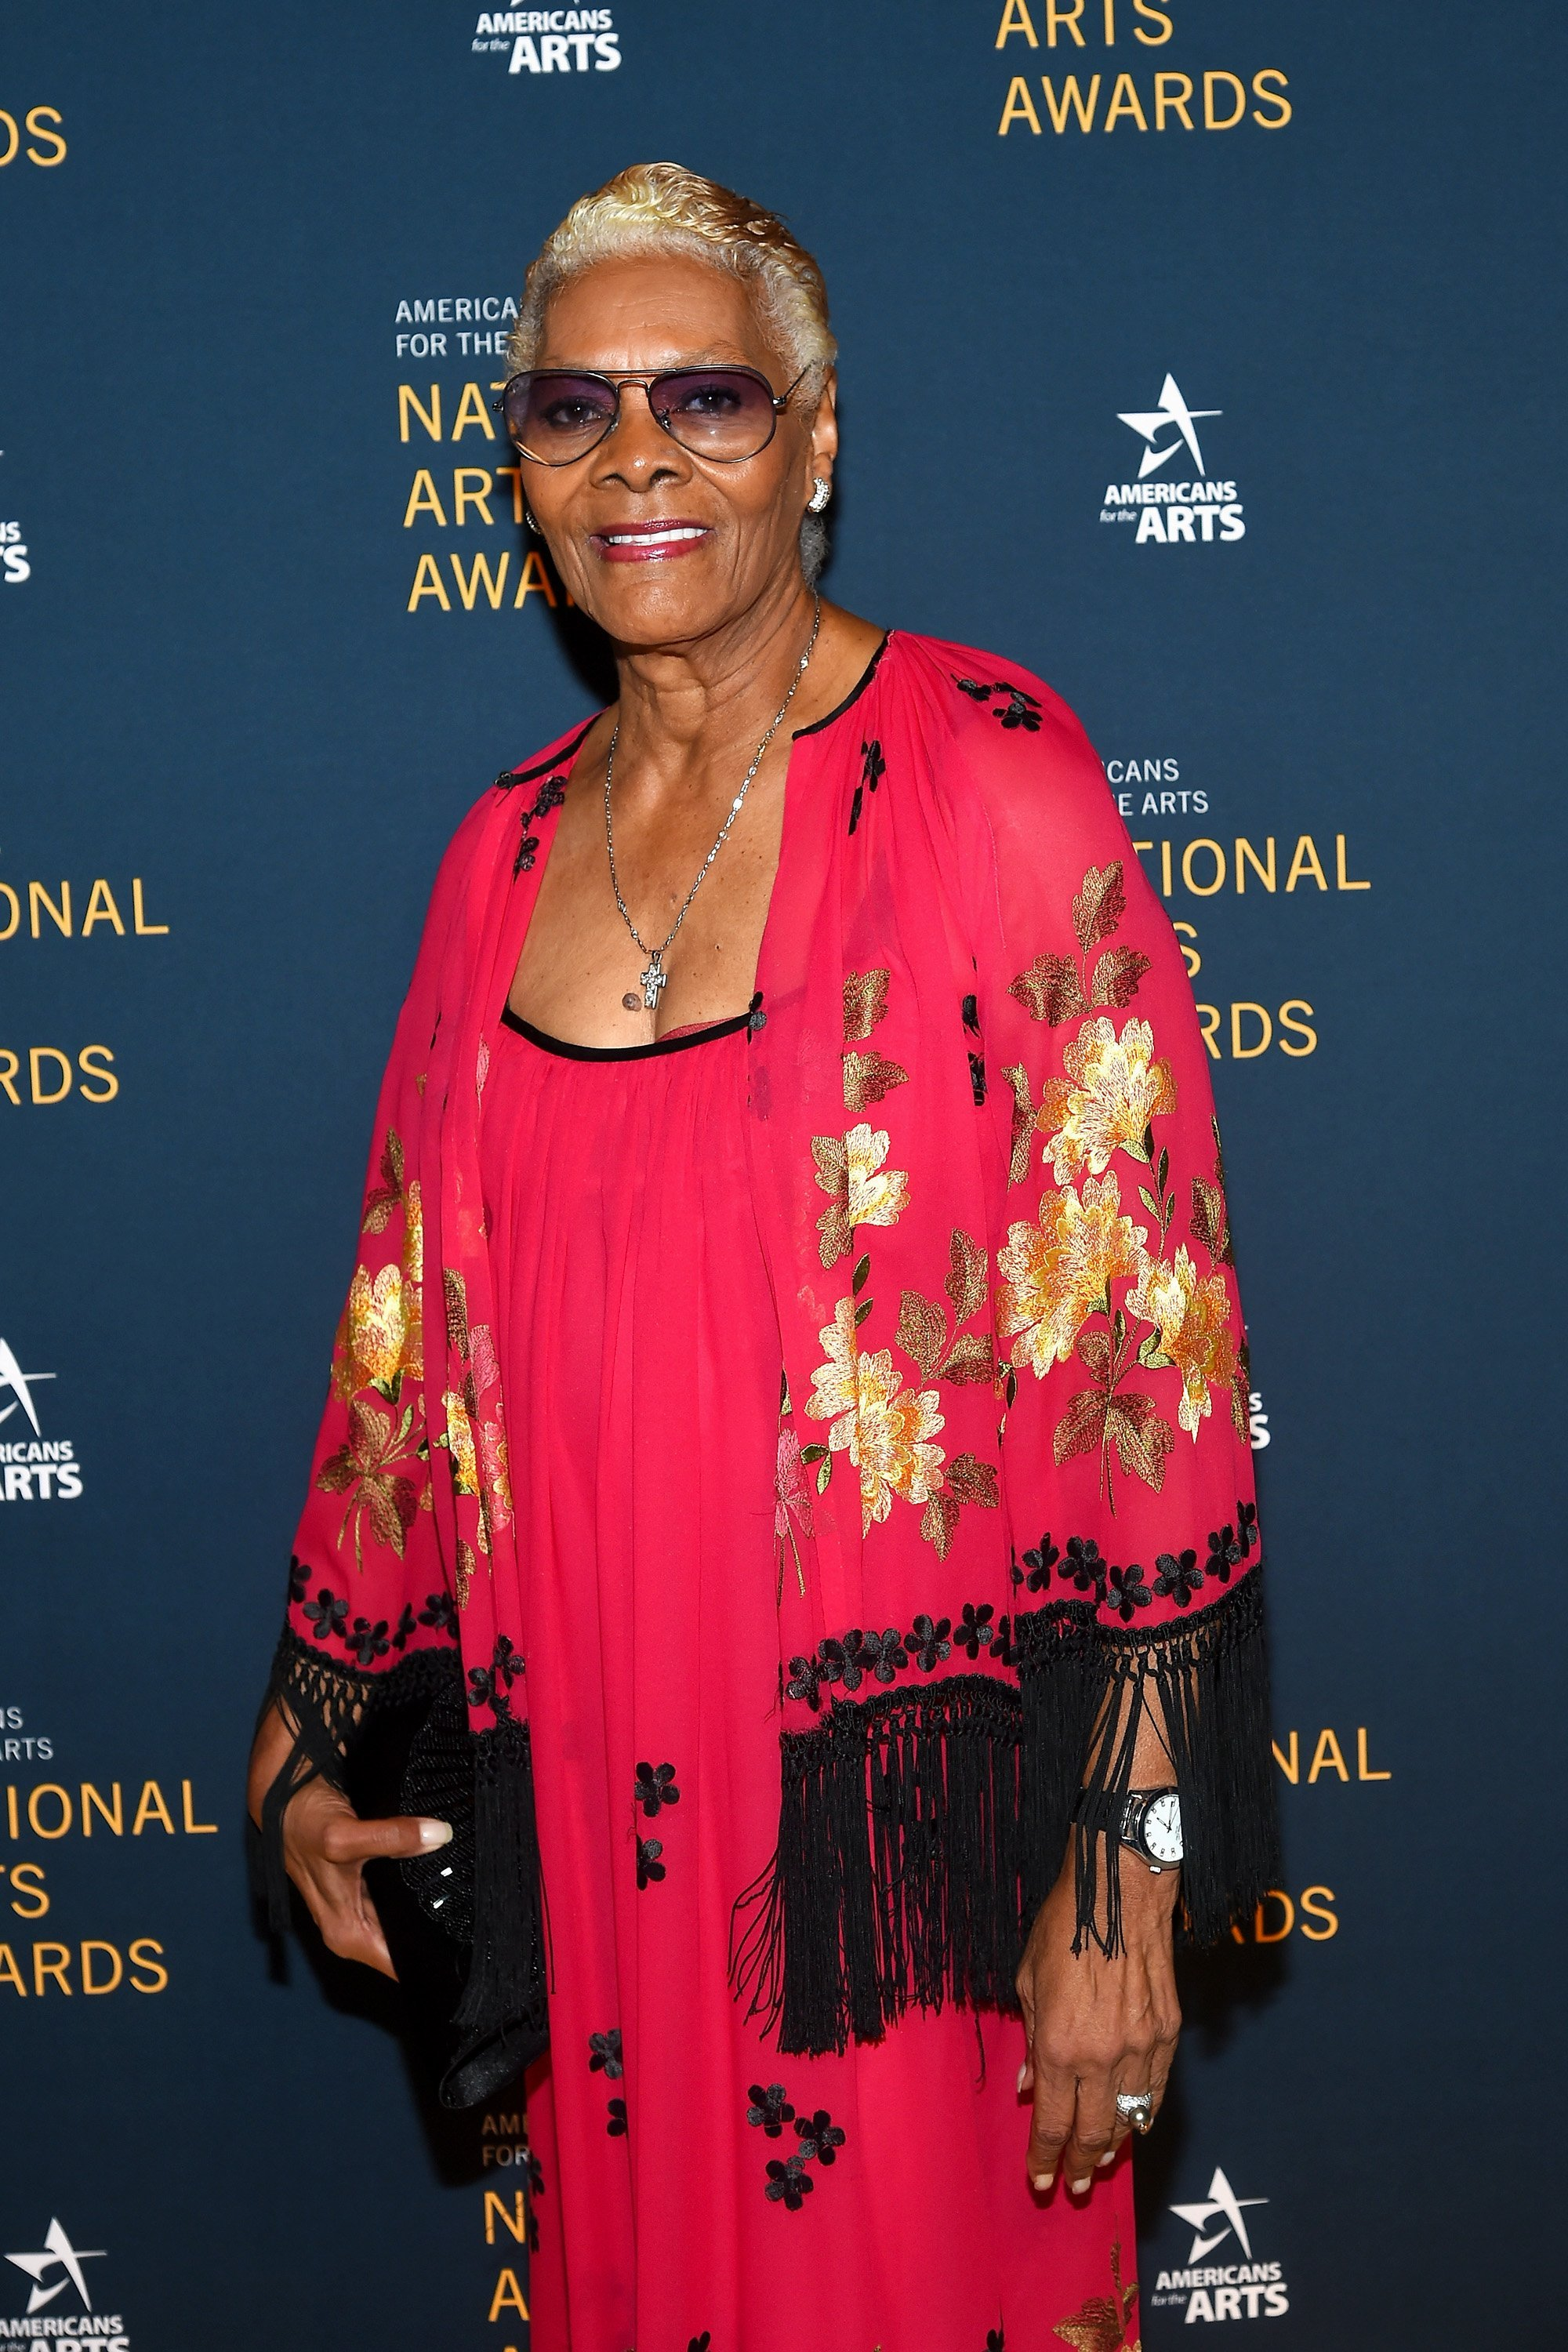 Dionne Warwick at the National Arts Awards in October 2017. | Photo: Getty Images